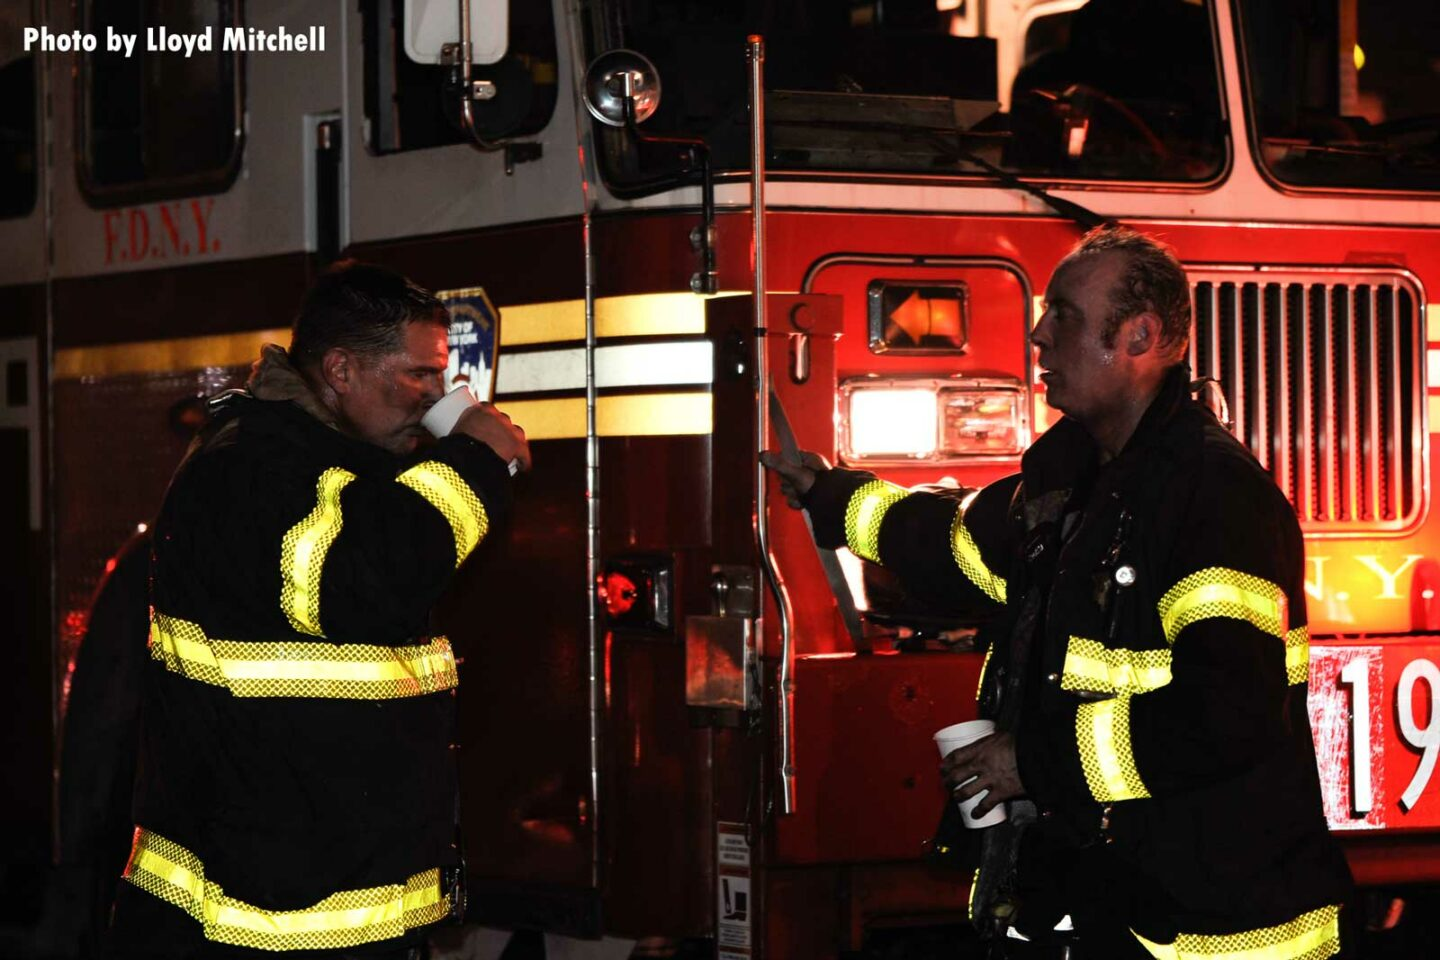 FDNY firefighters converse at the scene of a fire